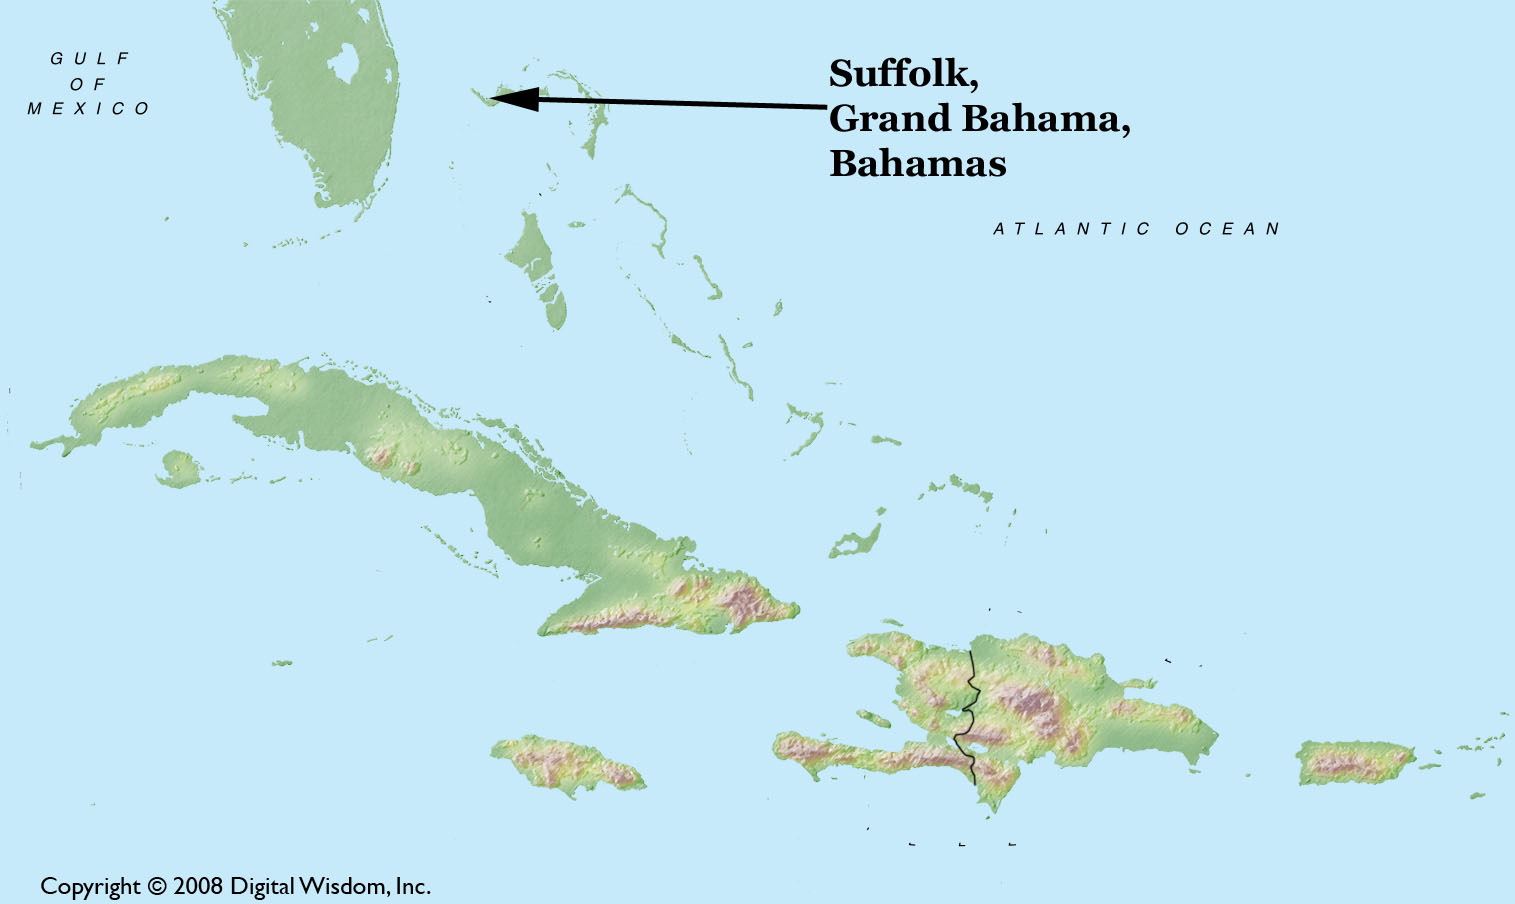 Suffolk Bahamas Planet Suffolk Bringing Together The Suffolks - Where is the bahamas located